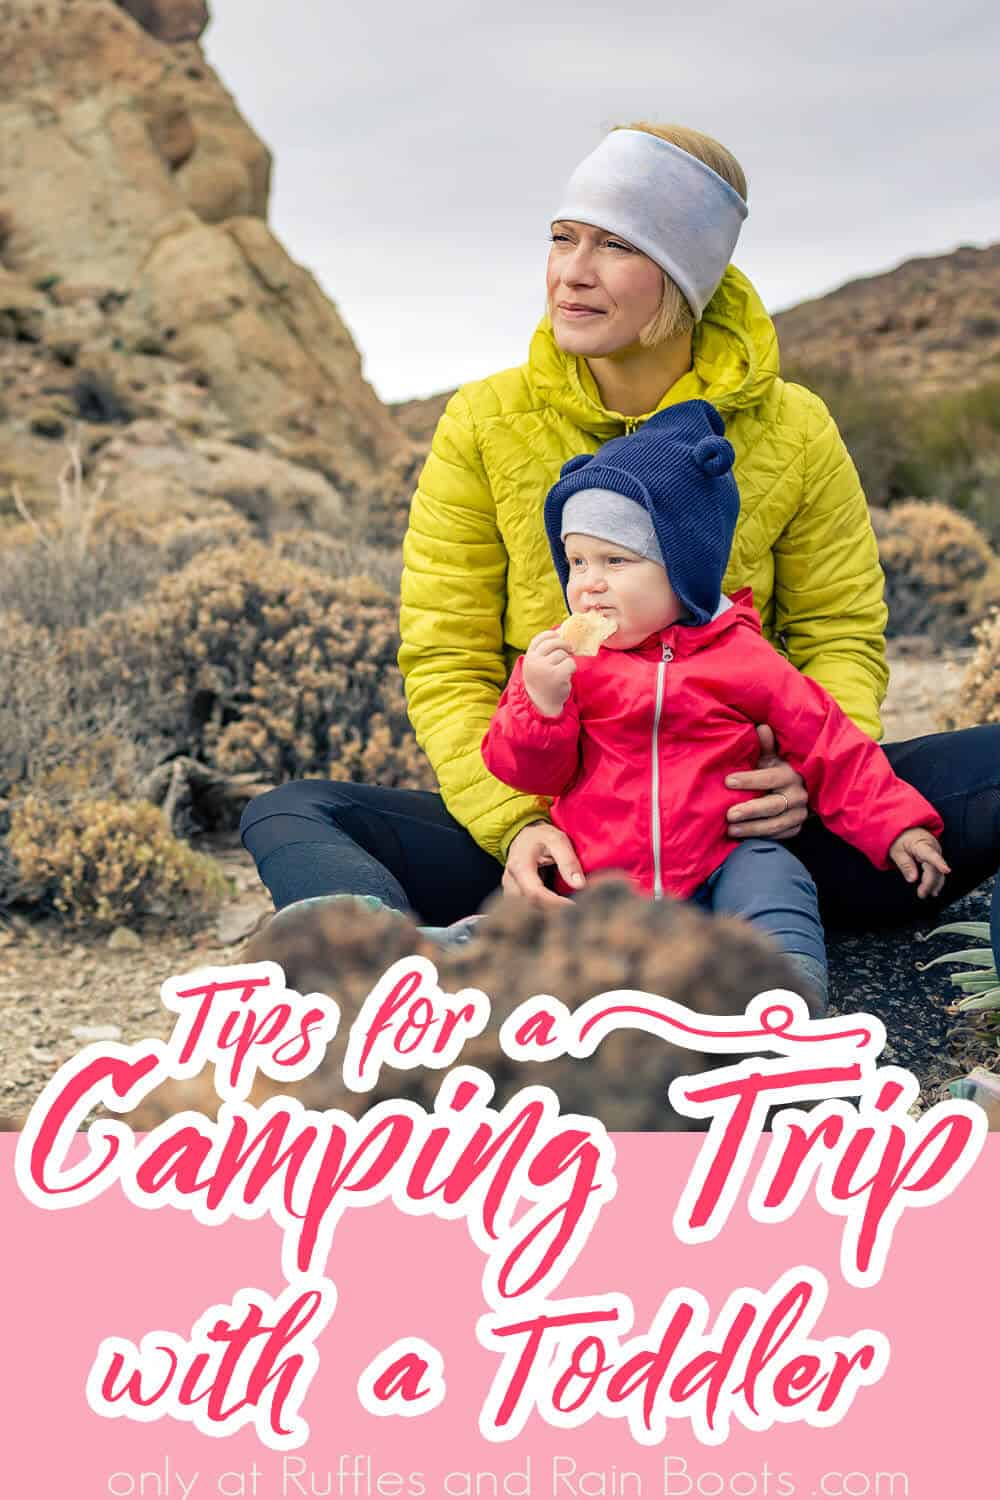 tips for camping with small kids with text which reads tips for a camping trip with a toddler